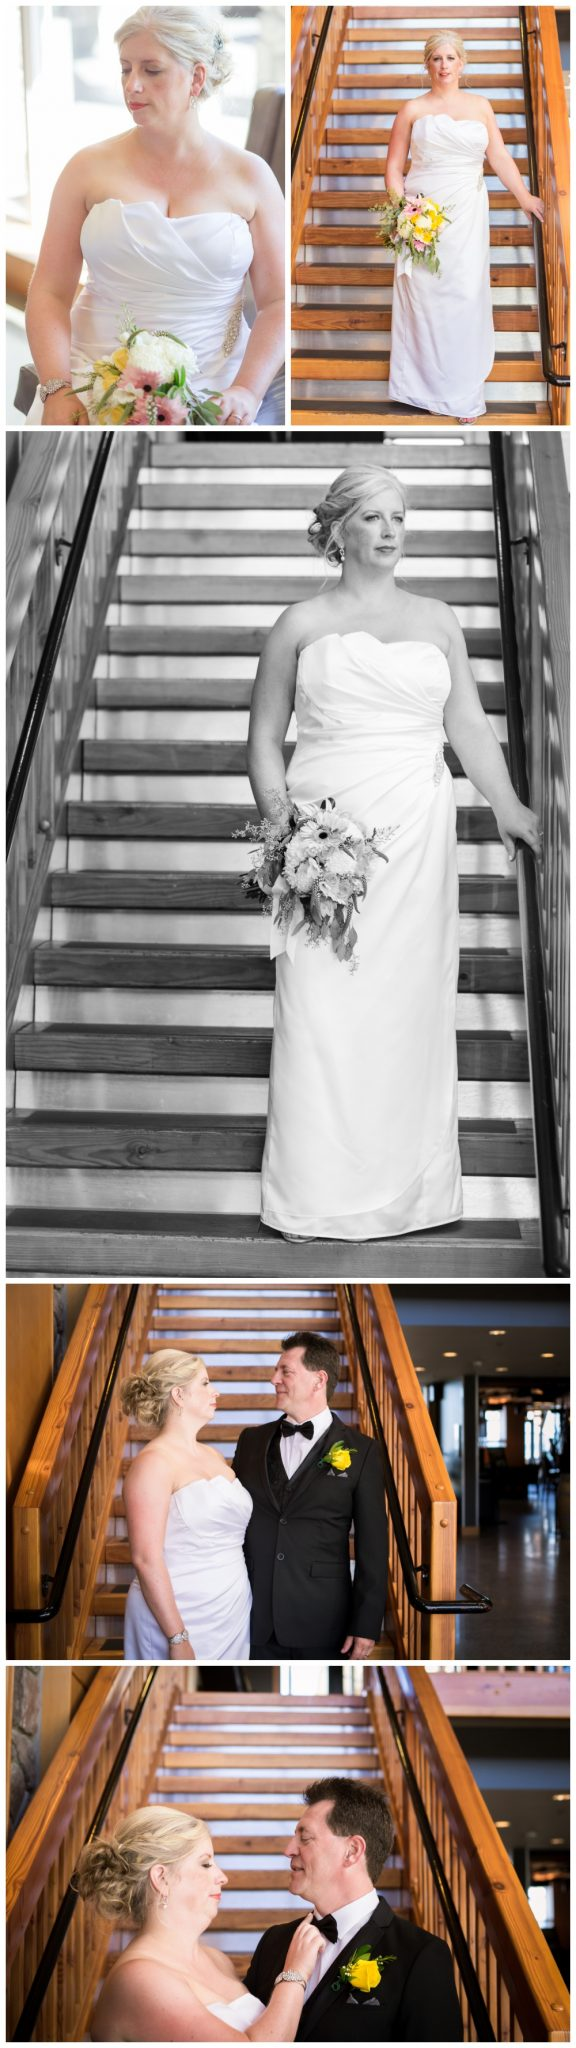 Bridal portraits in the stairs at the beach club on Vancouver island